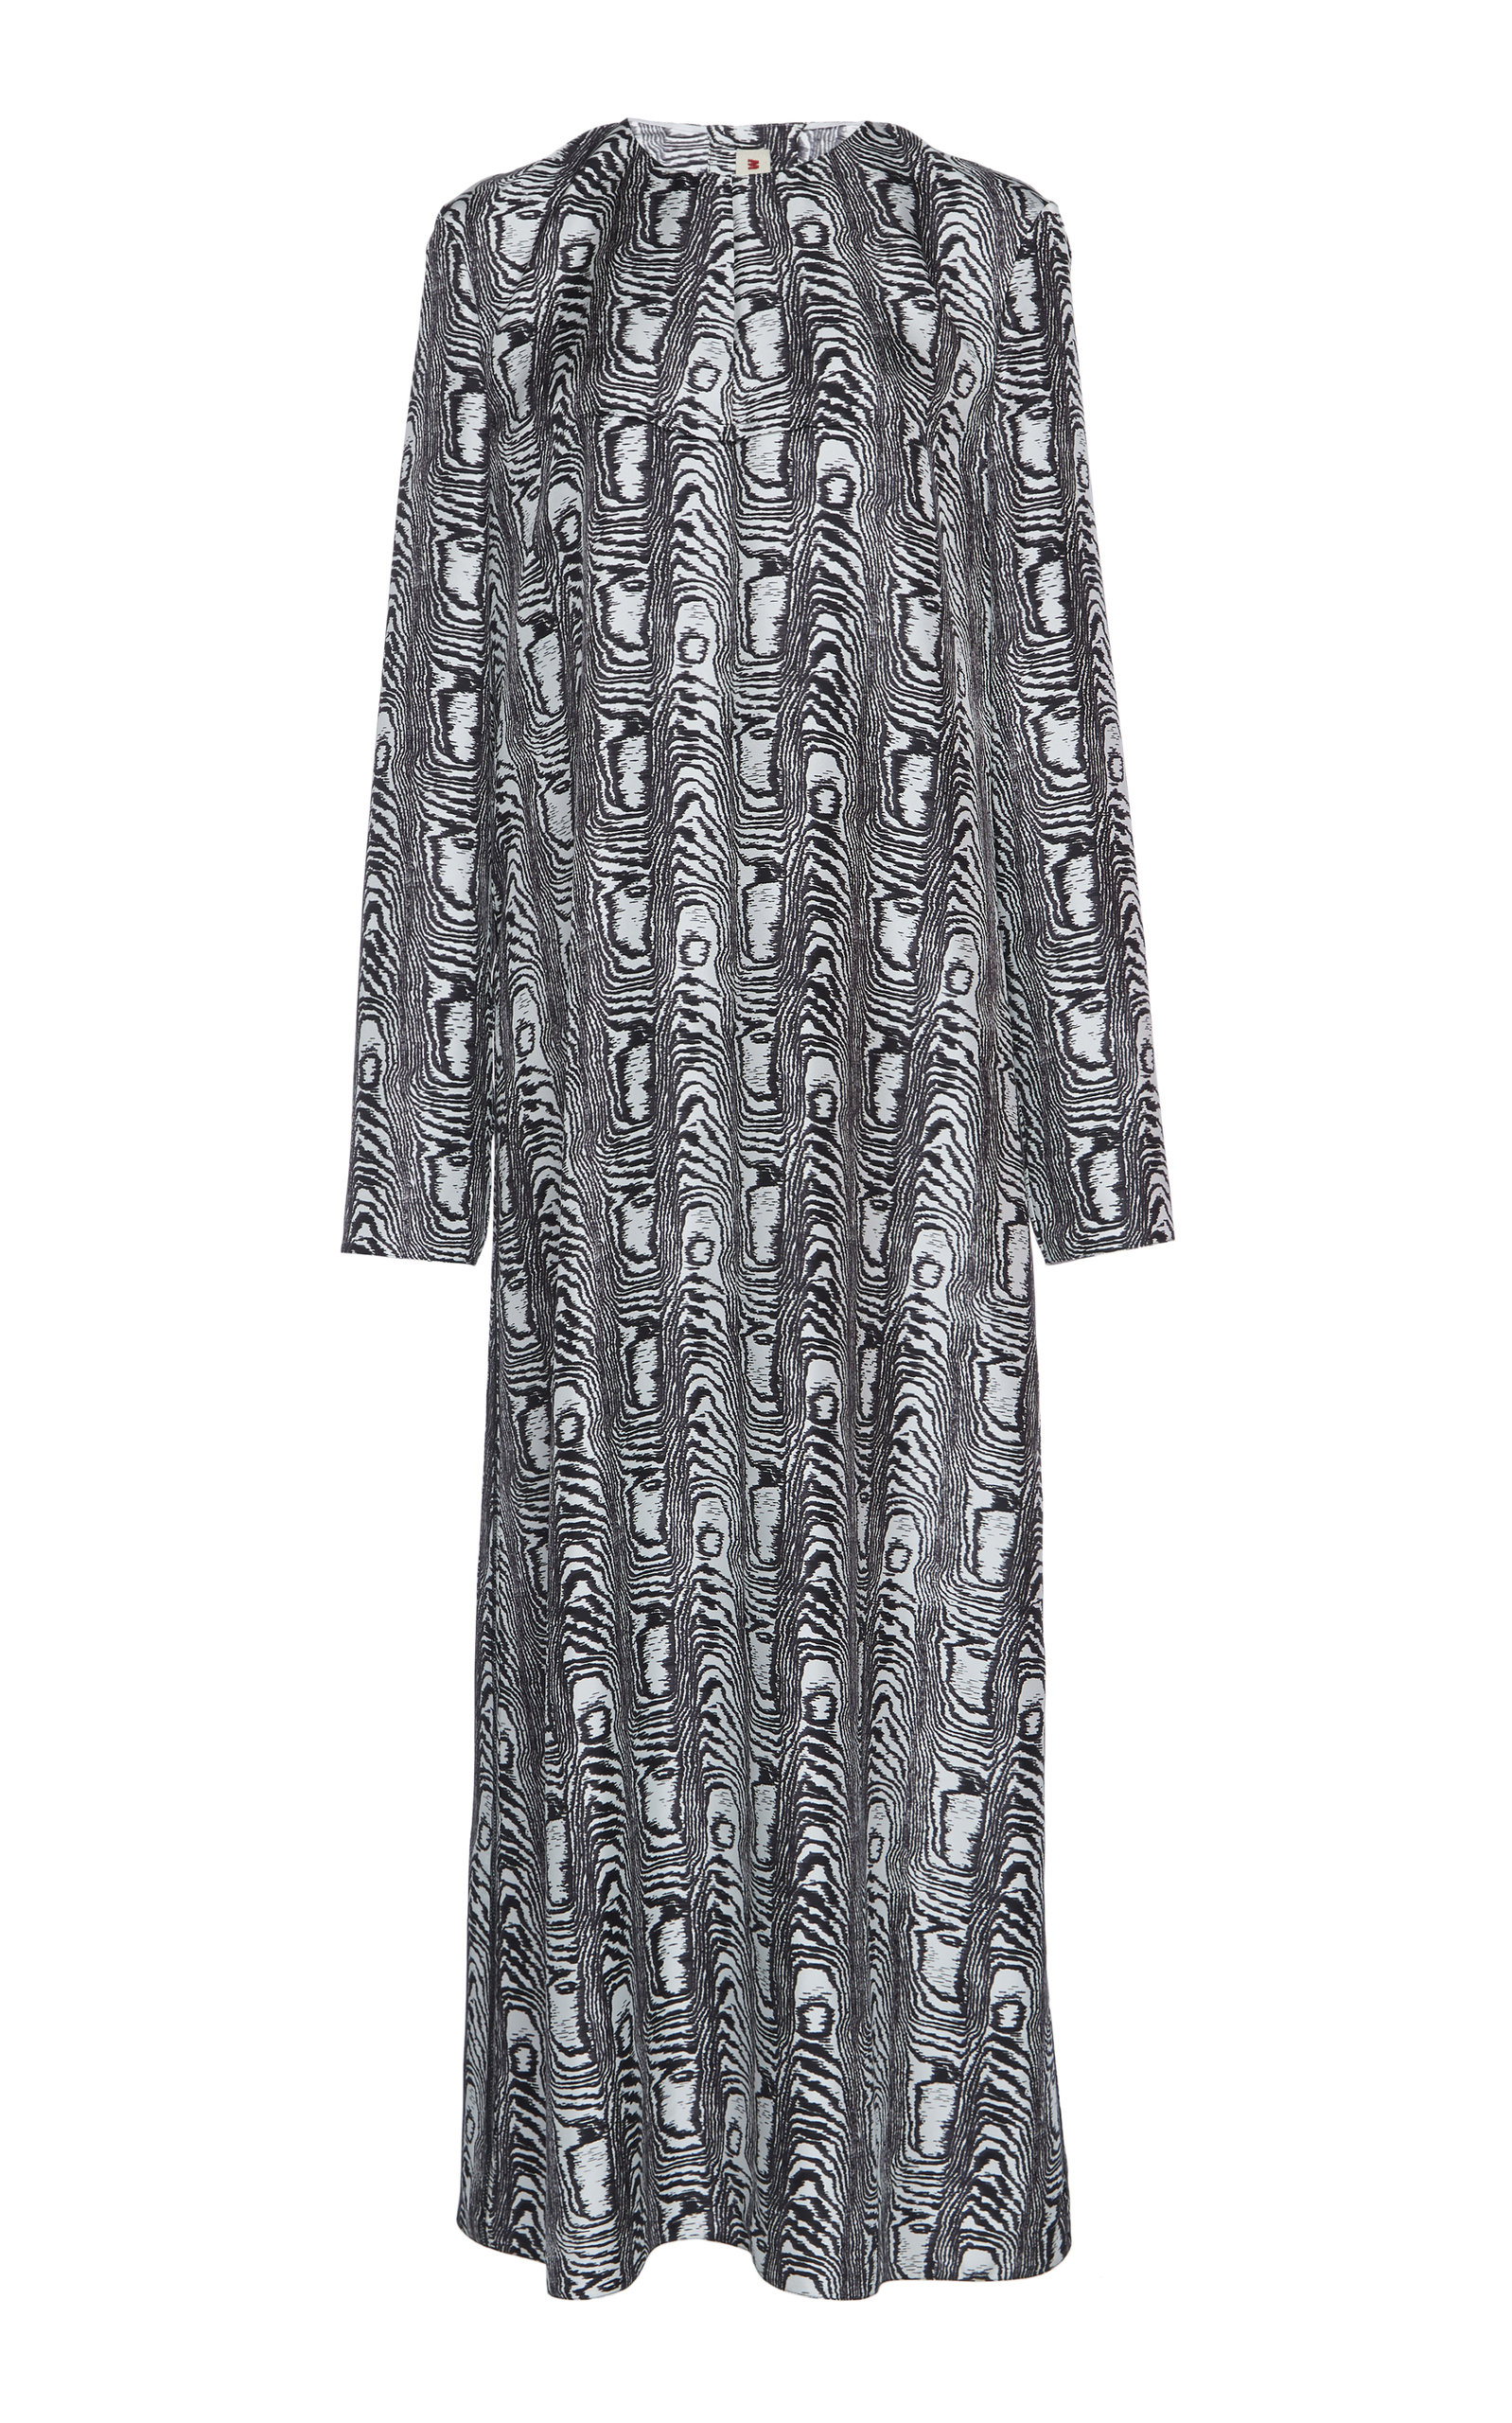 Buy Marni Printed Silk Midi Dress online, shop Marni at the best price